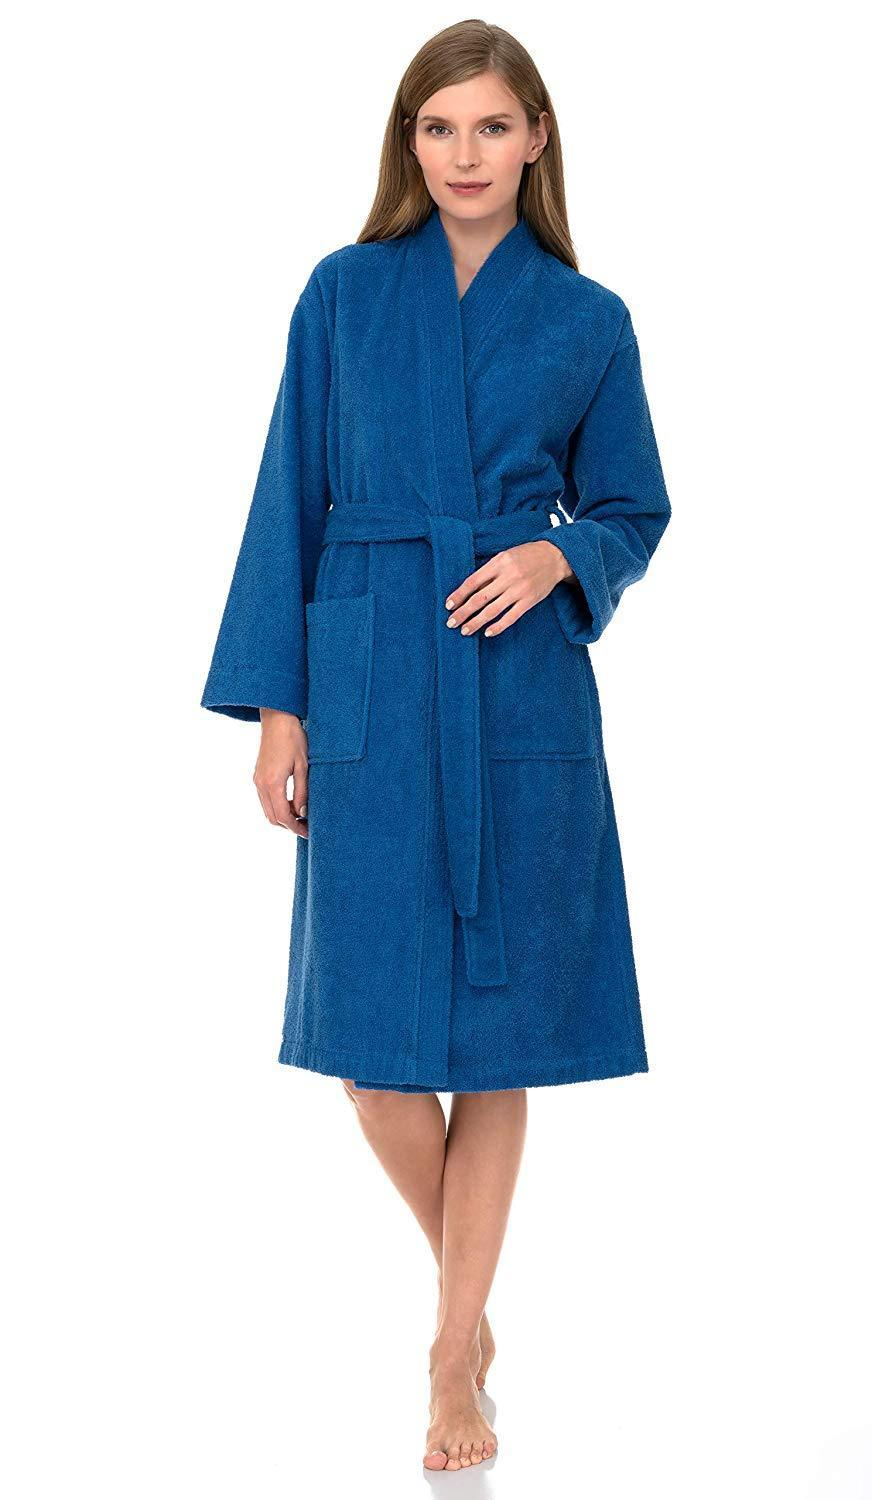 """<h3><a href=""""https://amzn.to/38RS6RV"""" rel=""""nofollow noopener"""" target=""""_blank"""" data-ylk=""""slk:Terrycloth Kimono Robe"""" class=""""link rapid-noclick-resp"""">Terrycloth Kimono Robe</a></h3><br>This cropped, kimono-style robe is crafted from premium 100%-Turkish cotton materials (for an absorbent-cozy finish) and comes fitted with pockets for extra post-shower convenience.<br><br>With nearly 2,000 reviews and a 4.3 out of 5-star rating, customers claim this affordable style is everything from """"very cozy"""" to """"pretty"""" and """"the best bathrobe ever!""""<br><br><strong>TowelSelections</strong> Turkish Cotton Terry Kimono Bathrobe, $, available at <a href=""""https://amzn.to/38RS6RV"""" rel=""""nofollow noopener"""" target=""""_blank"""" data-ylk=""""slk:Amazon"""" class=""""link rapid-noclick-resp"""">Amazon</a>"""